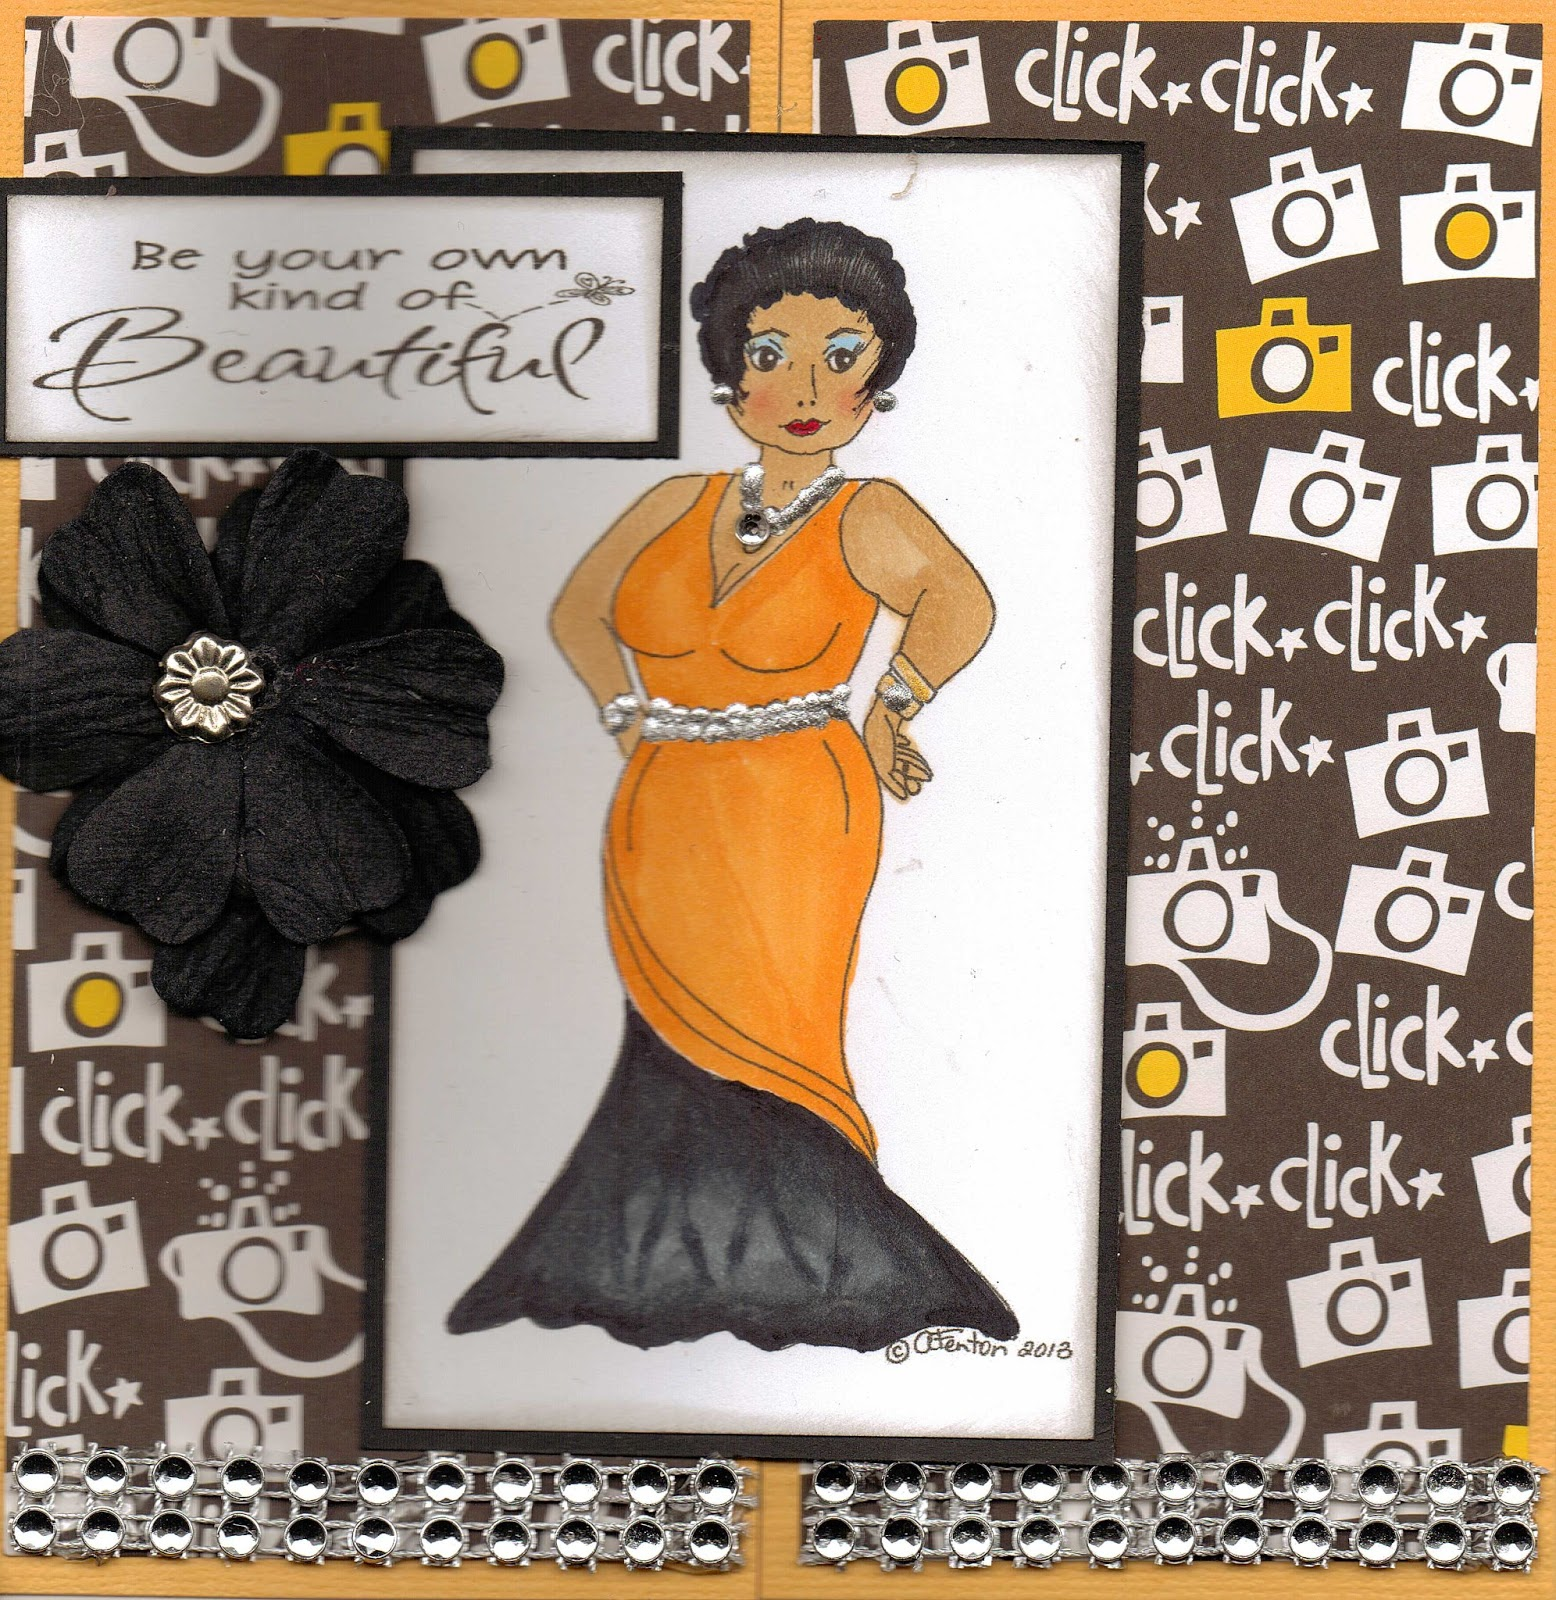 My afrocentric creations birthday cards it is a free image that we can make whatever we want with i made a gate fold card for a friends birthday m4hsunfo